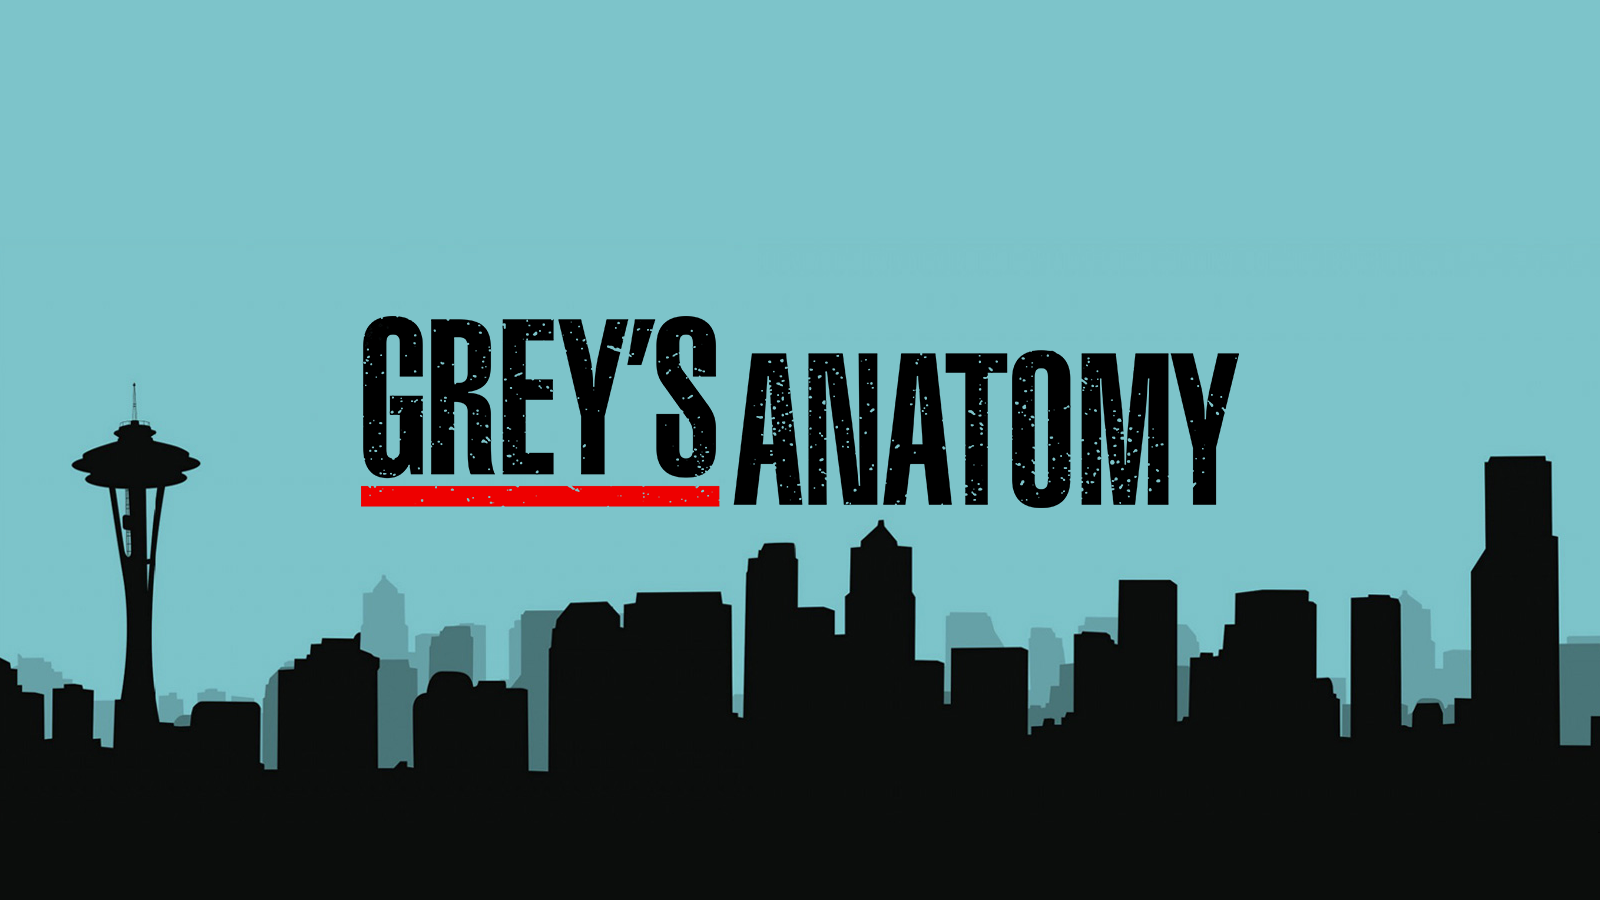 Greys anatomy Logos